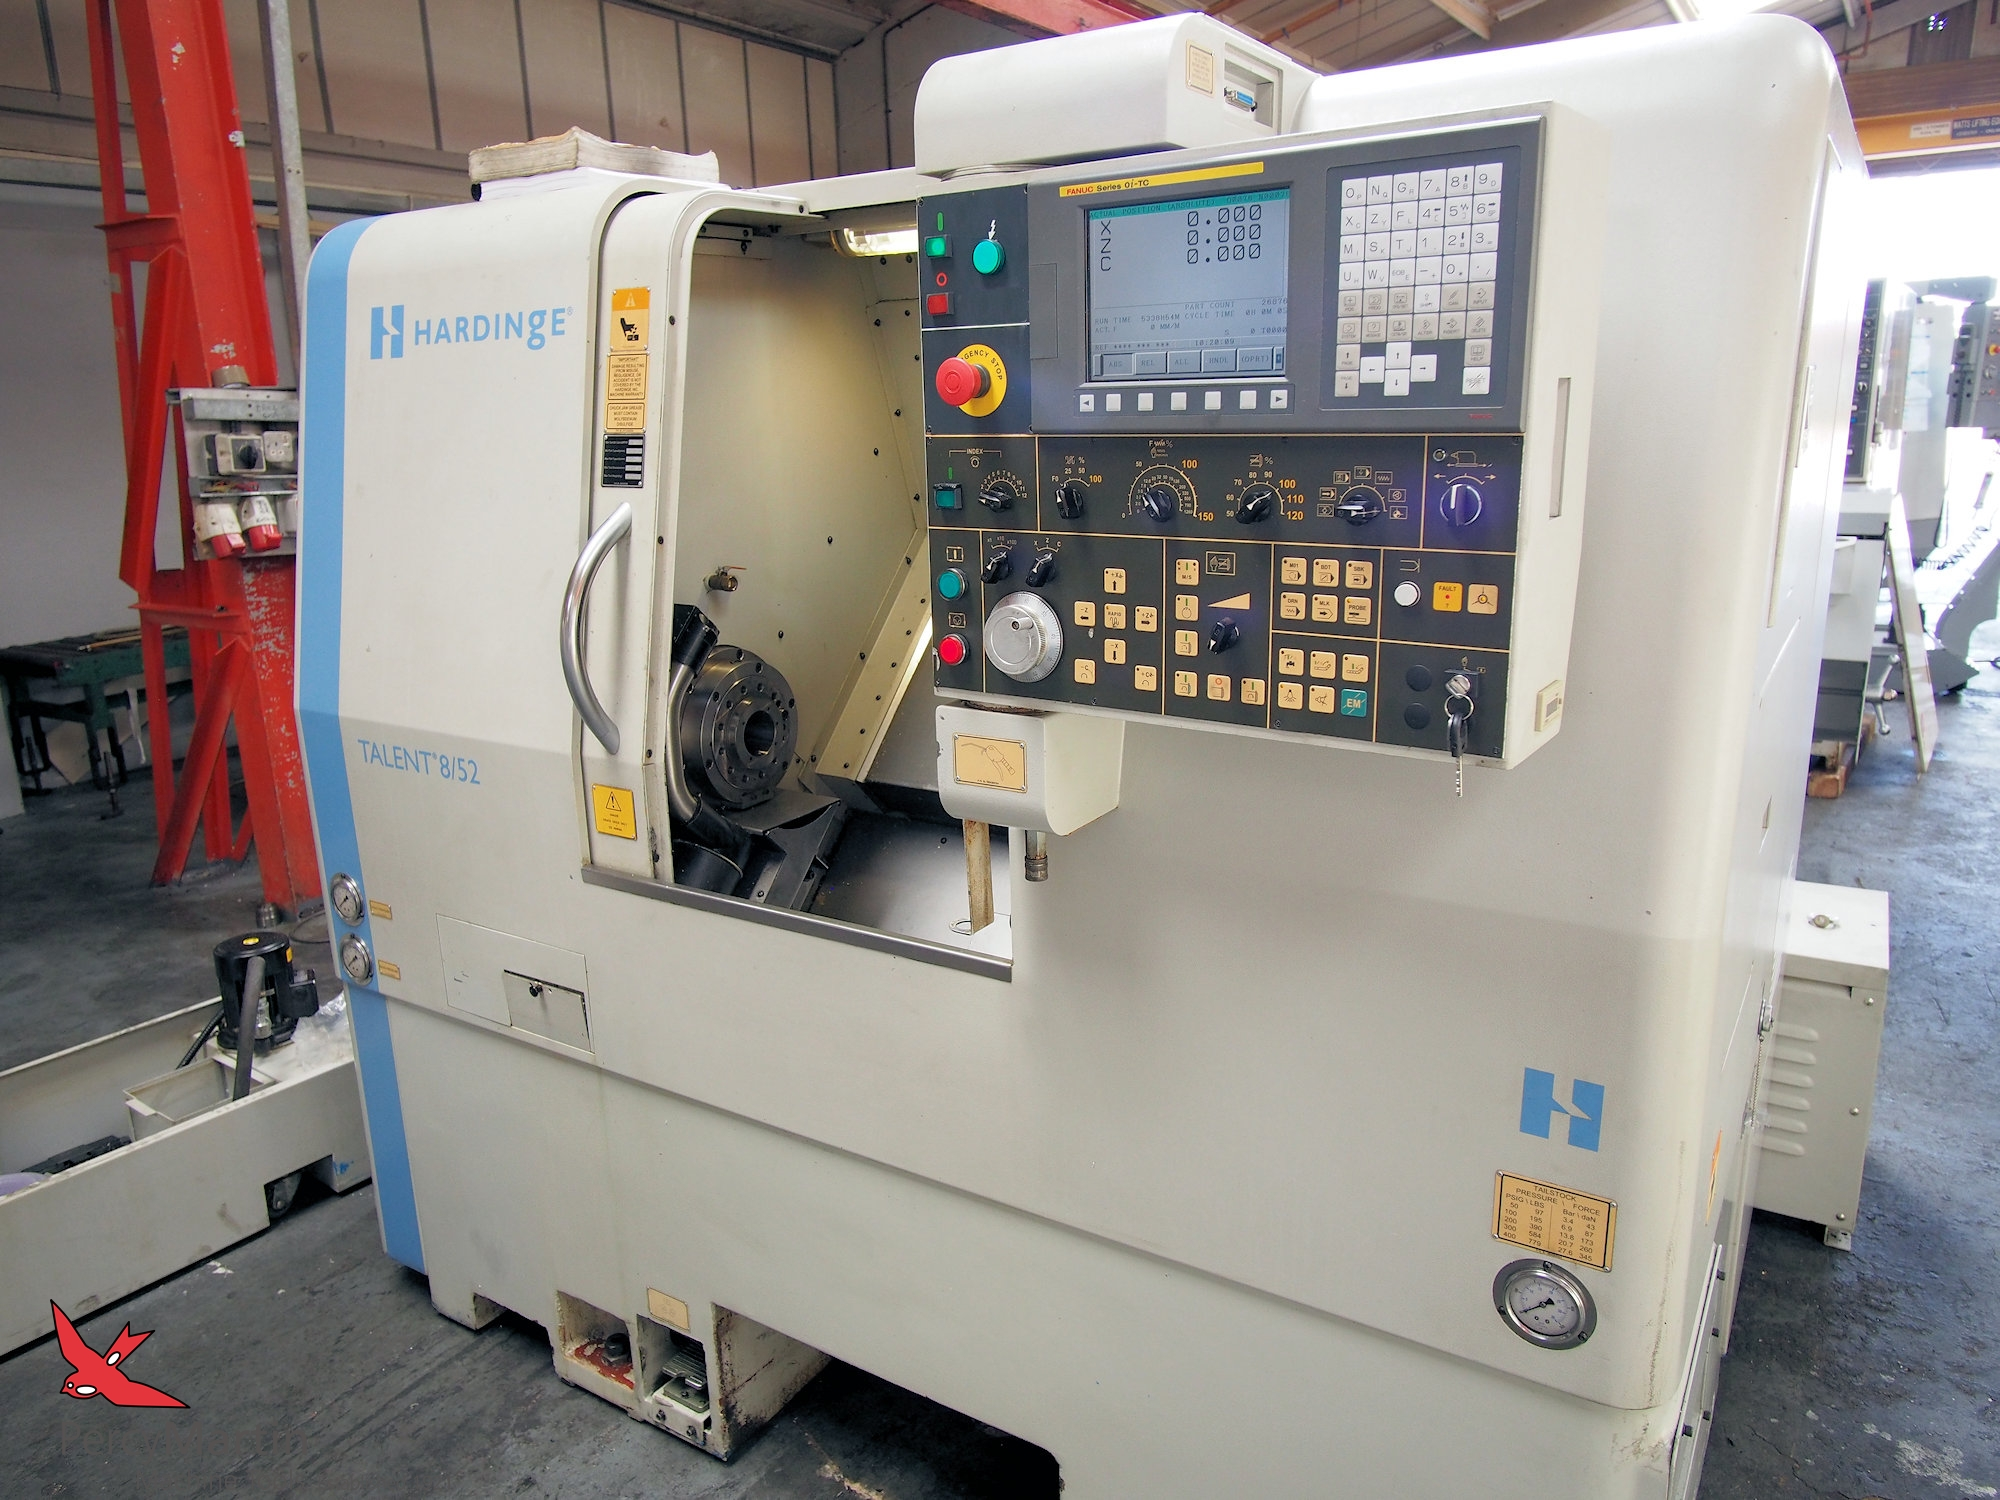 Hardinge Talent 8/52 with C axis & Milling 2006